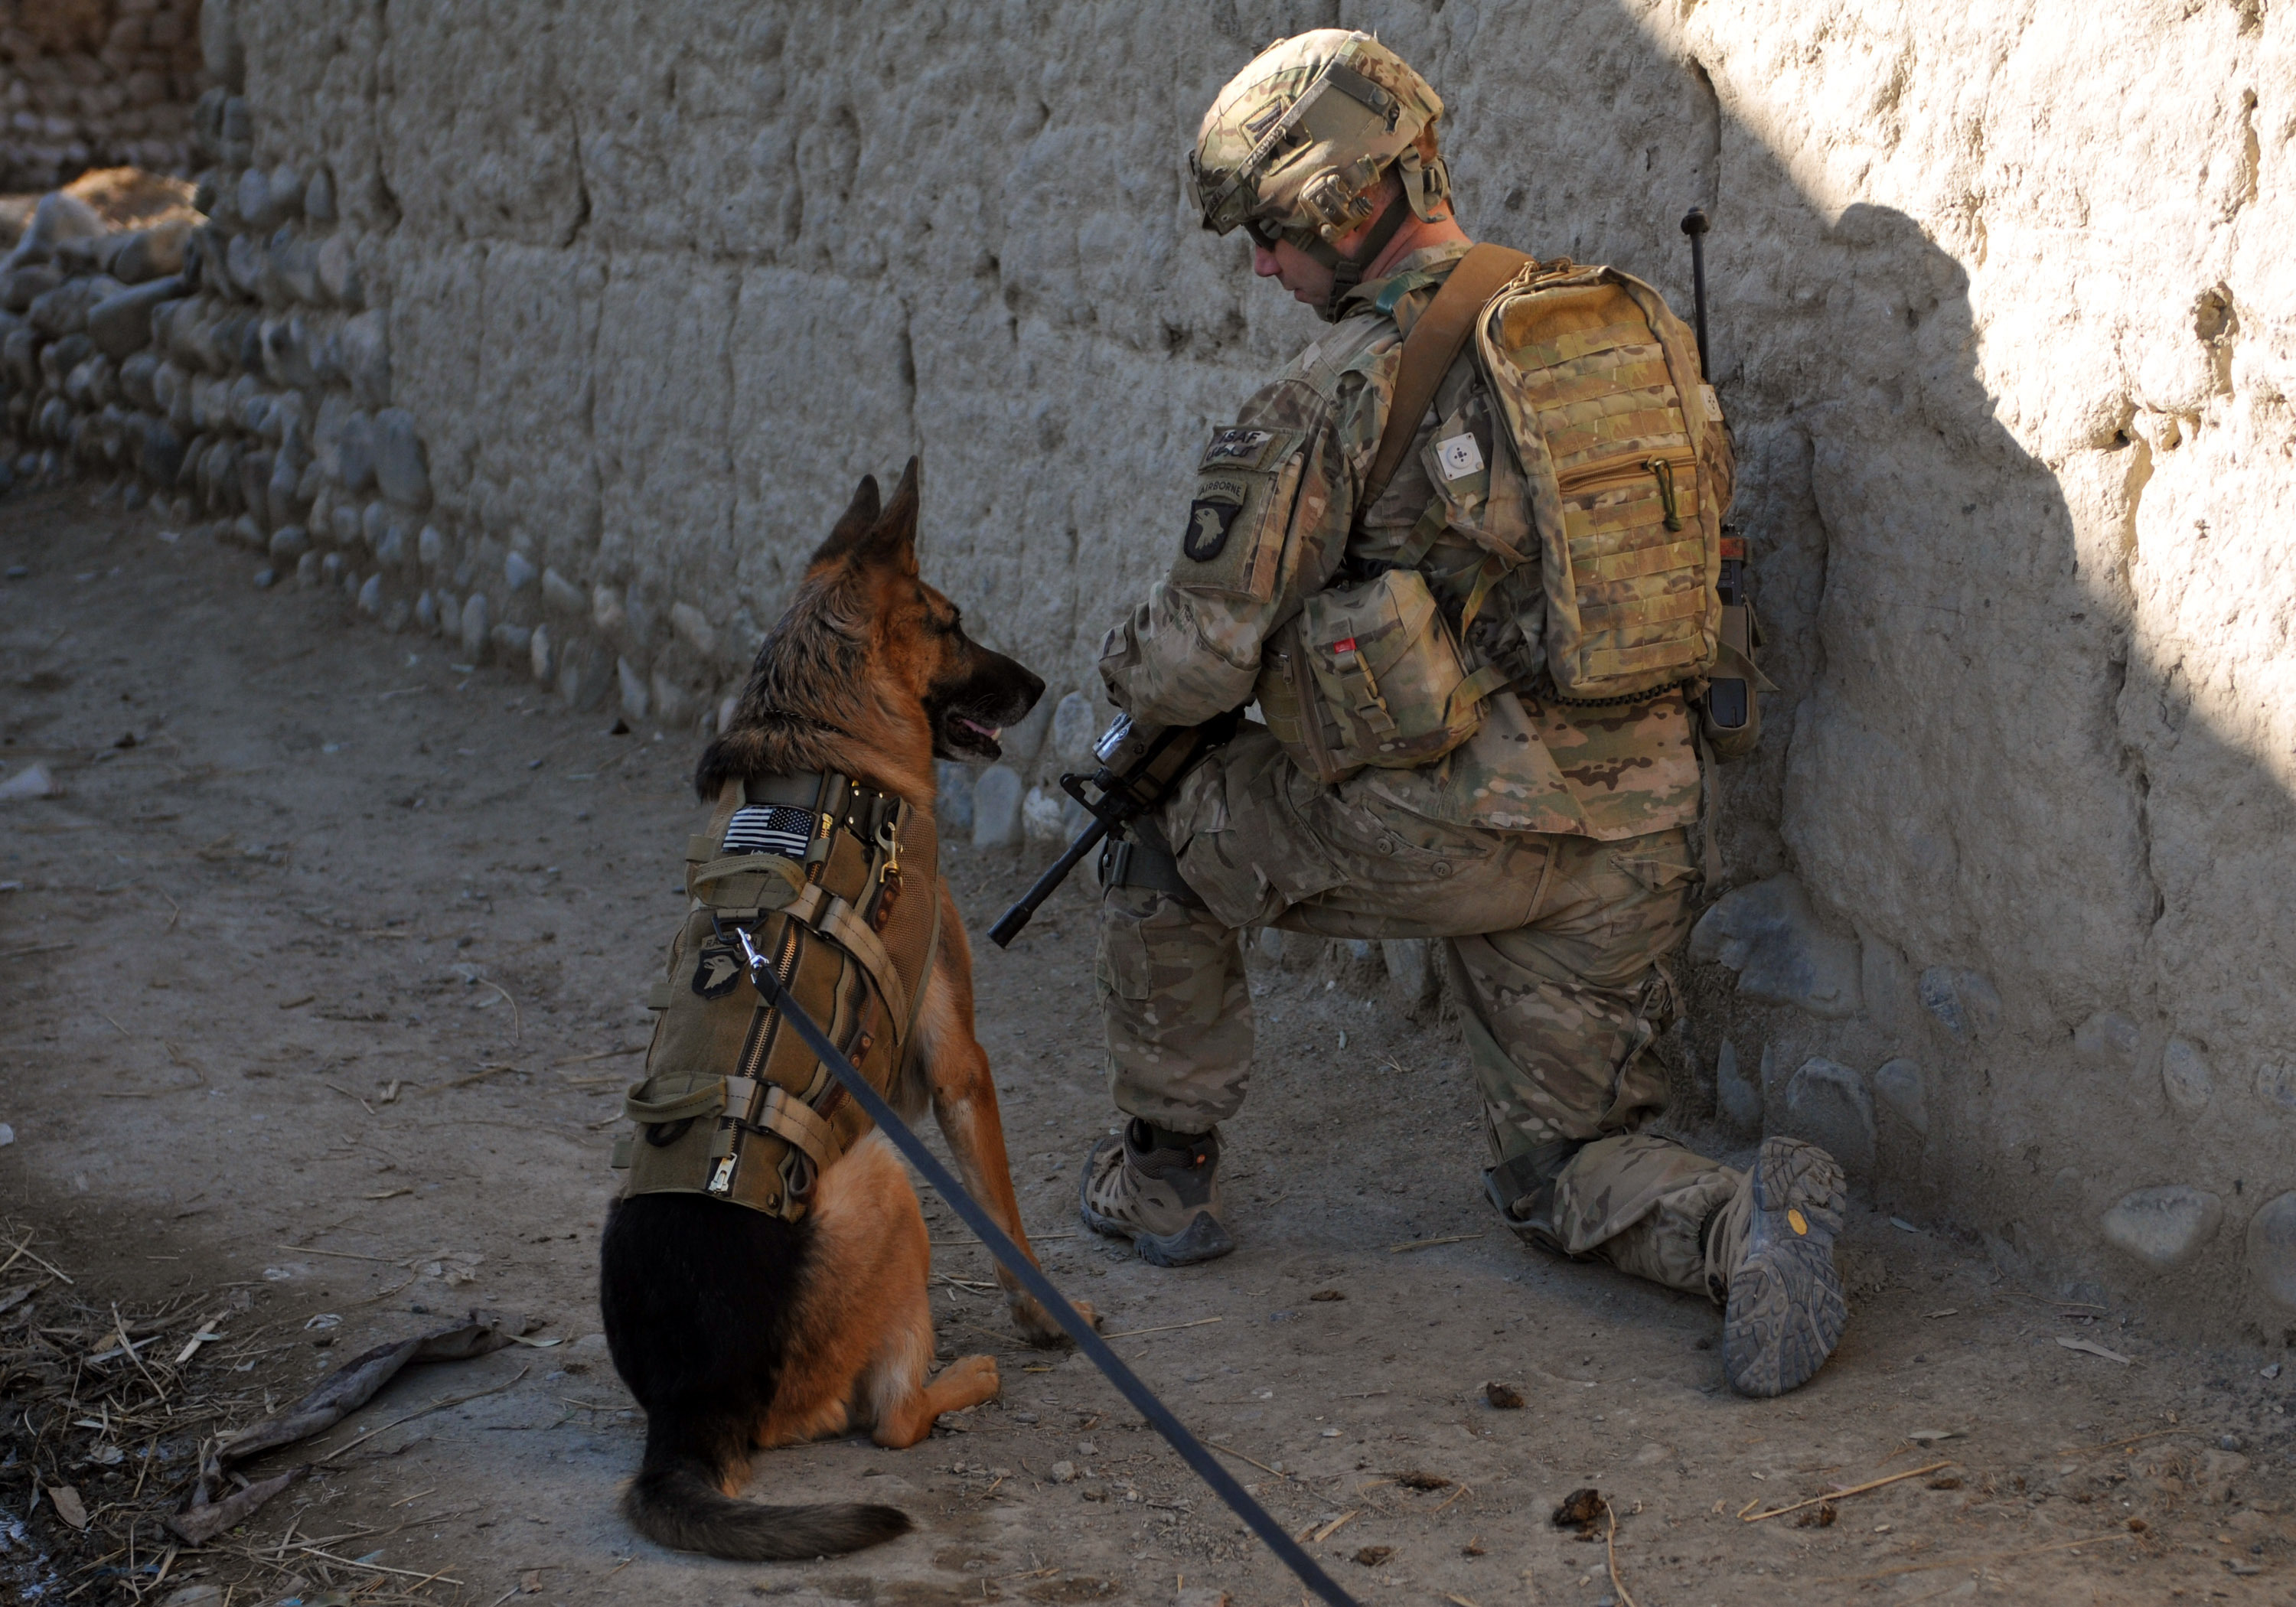 "U.S. Army 1st Sgt. Brian Zamiska, the company first sergeant for Delta Company, 3rd Battalion, 187th Infantry Regiment, 3rd Brigade Combat Team ""Rakkasans,"" 101st Airborne Division (Air Assault), pulls security with a U.S. Air Force working dog, Jan. 6, 2013, during a patrol with the Afghan Border Police in Tera Zeyi district, Afghanistan. The ABP were looking for locals suspected of creating improvised explosive devices. (U.S. Army photo by Spc. Alex Kirk Amen, 115th Mobile Public Affairs Detachment)"